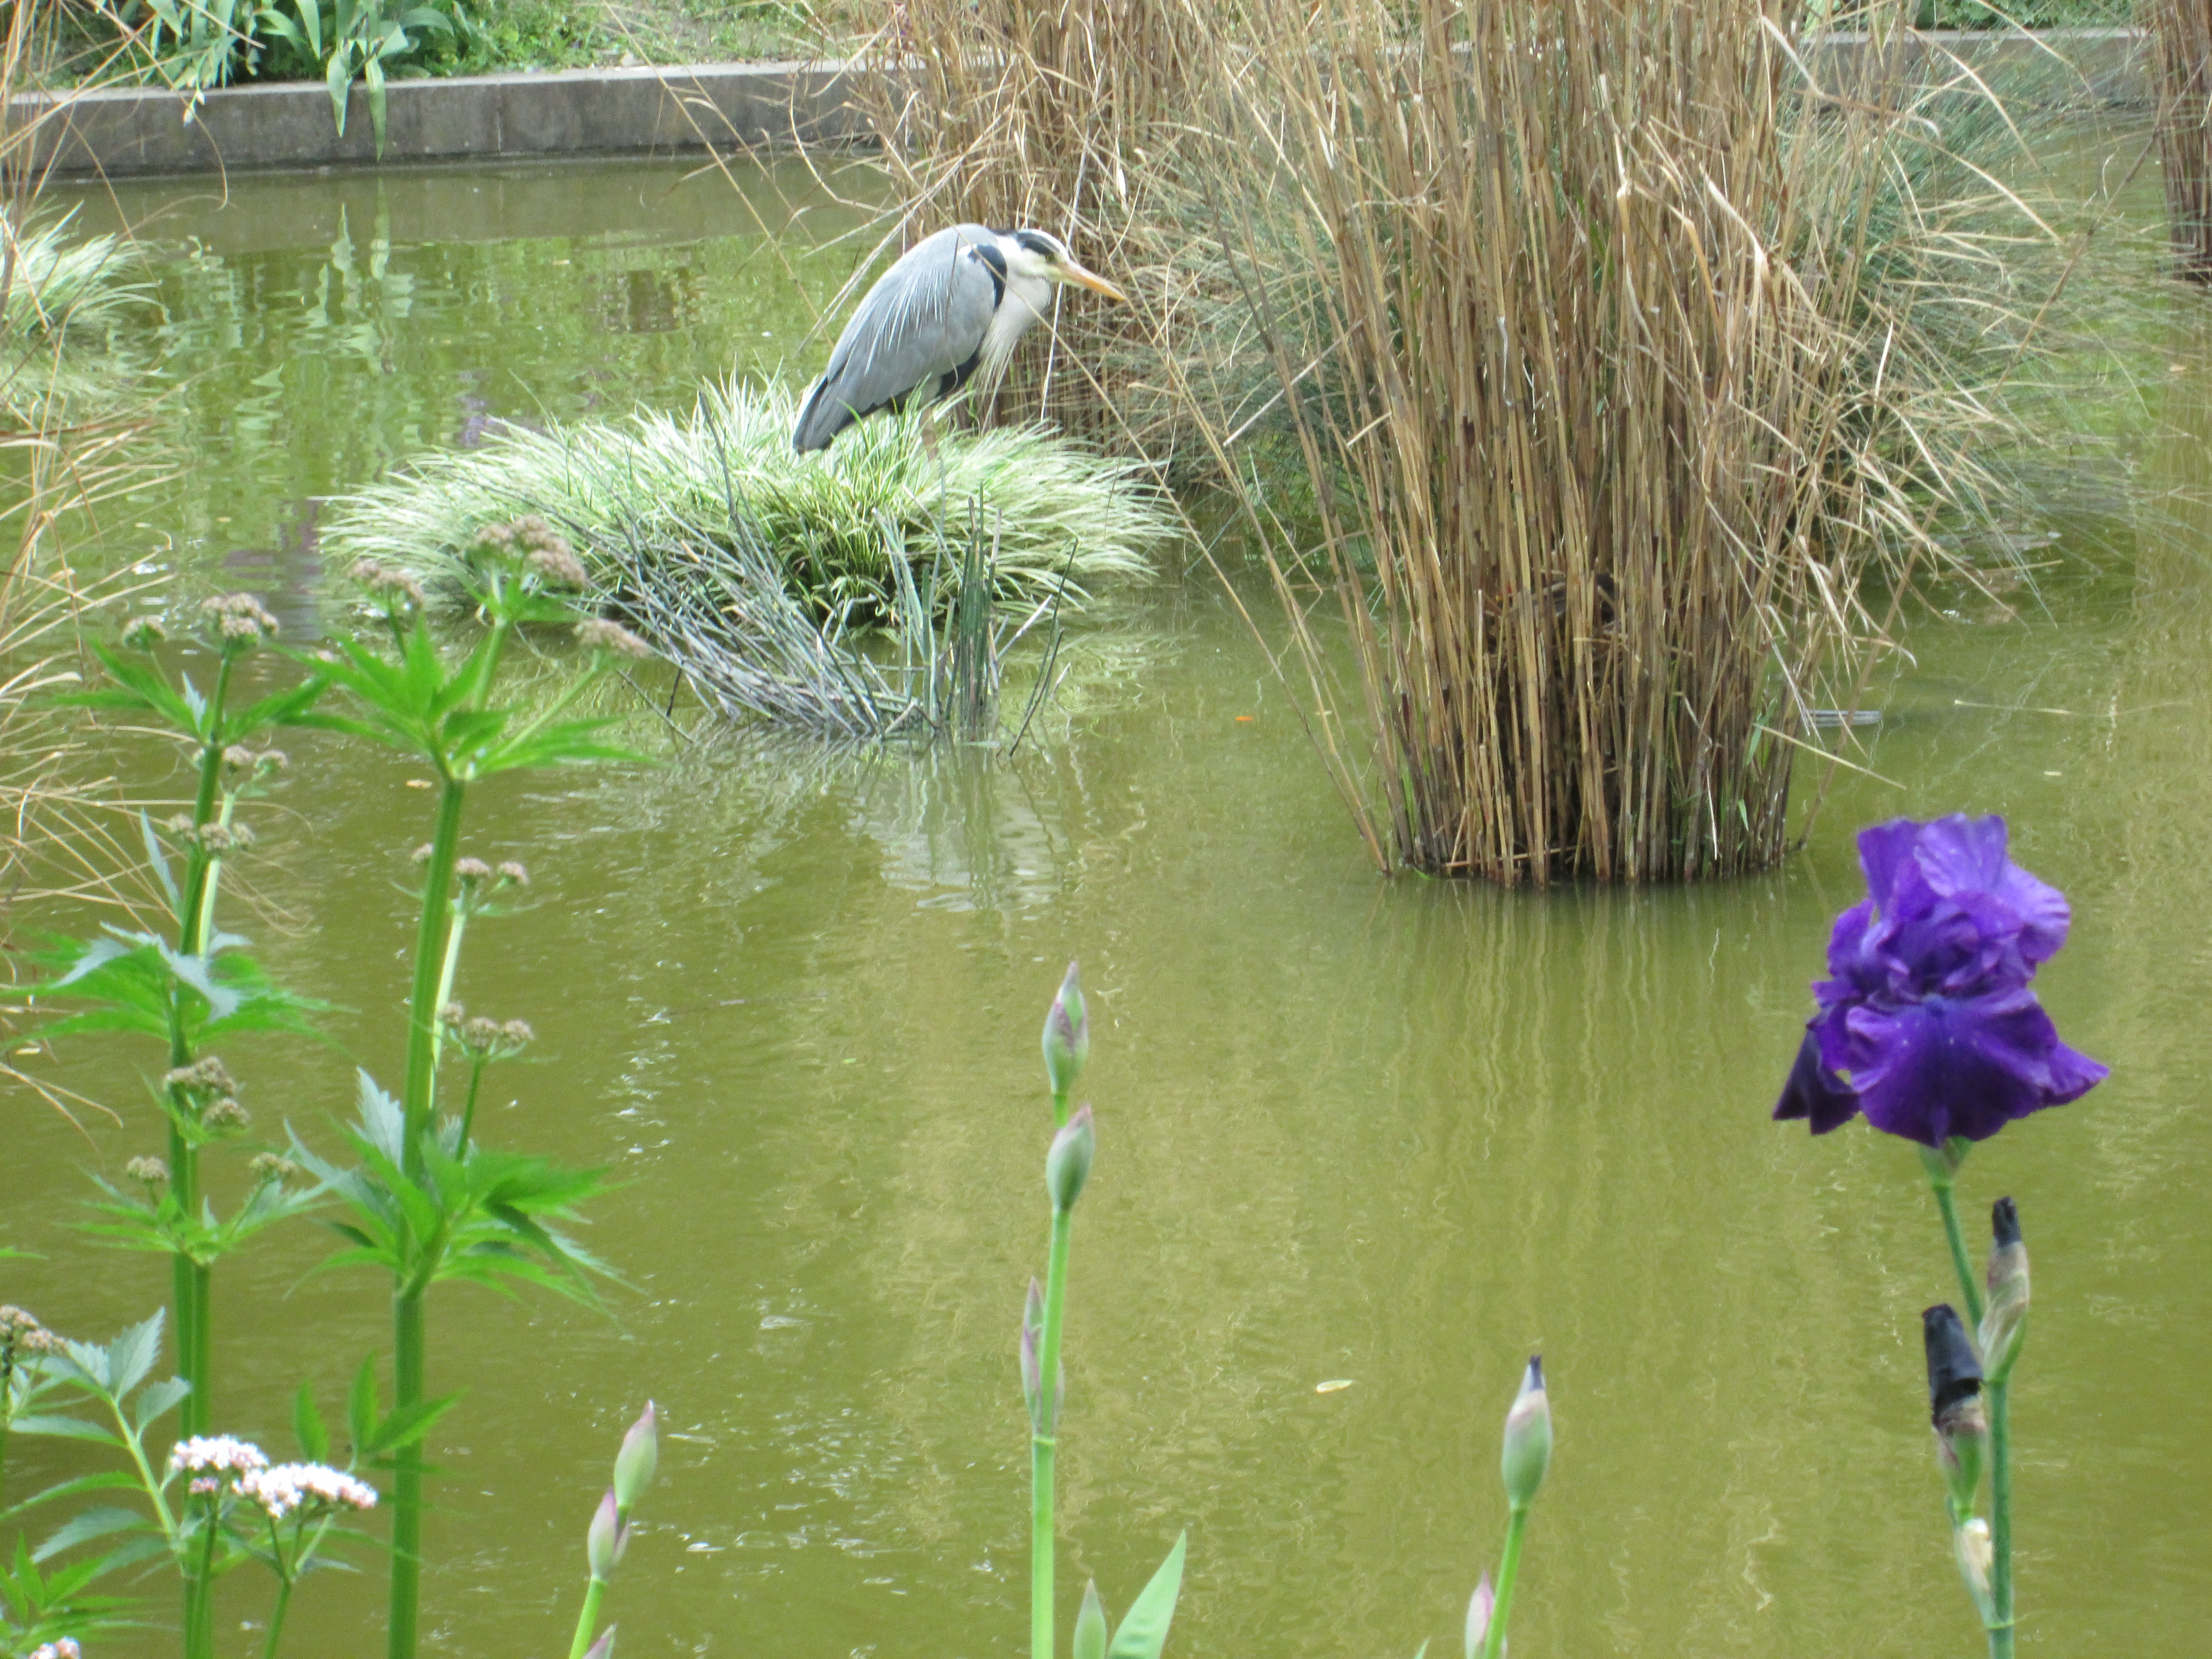 Heron and Iris at the Tuileries